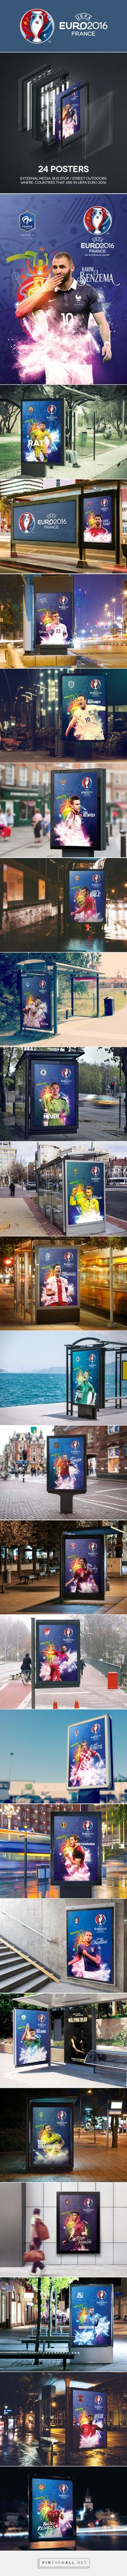 UEFA Euro 2016 Posters on Behance. - a grouped images picture Free Football, Uefa Euro 2016, Event Branding, Soccer League, Poster On, Event Design, World Cup, Competition, Web Design